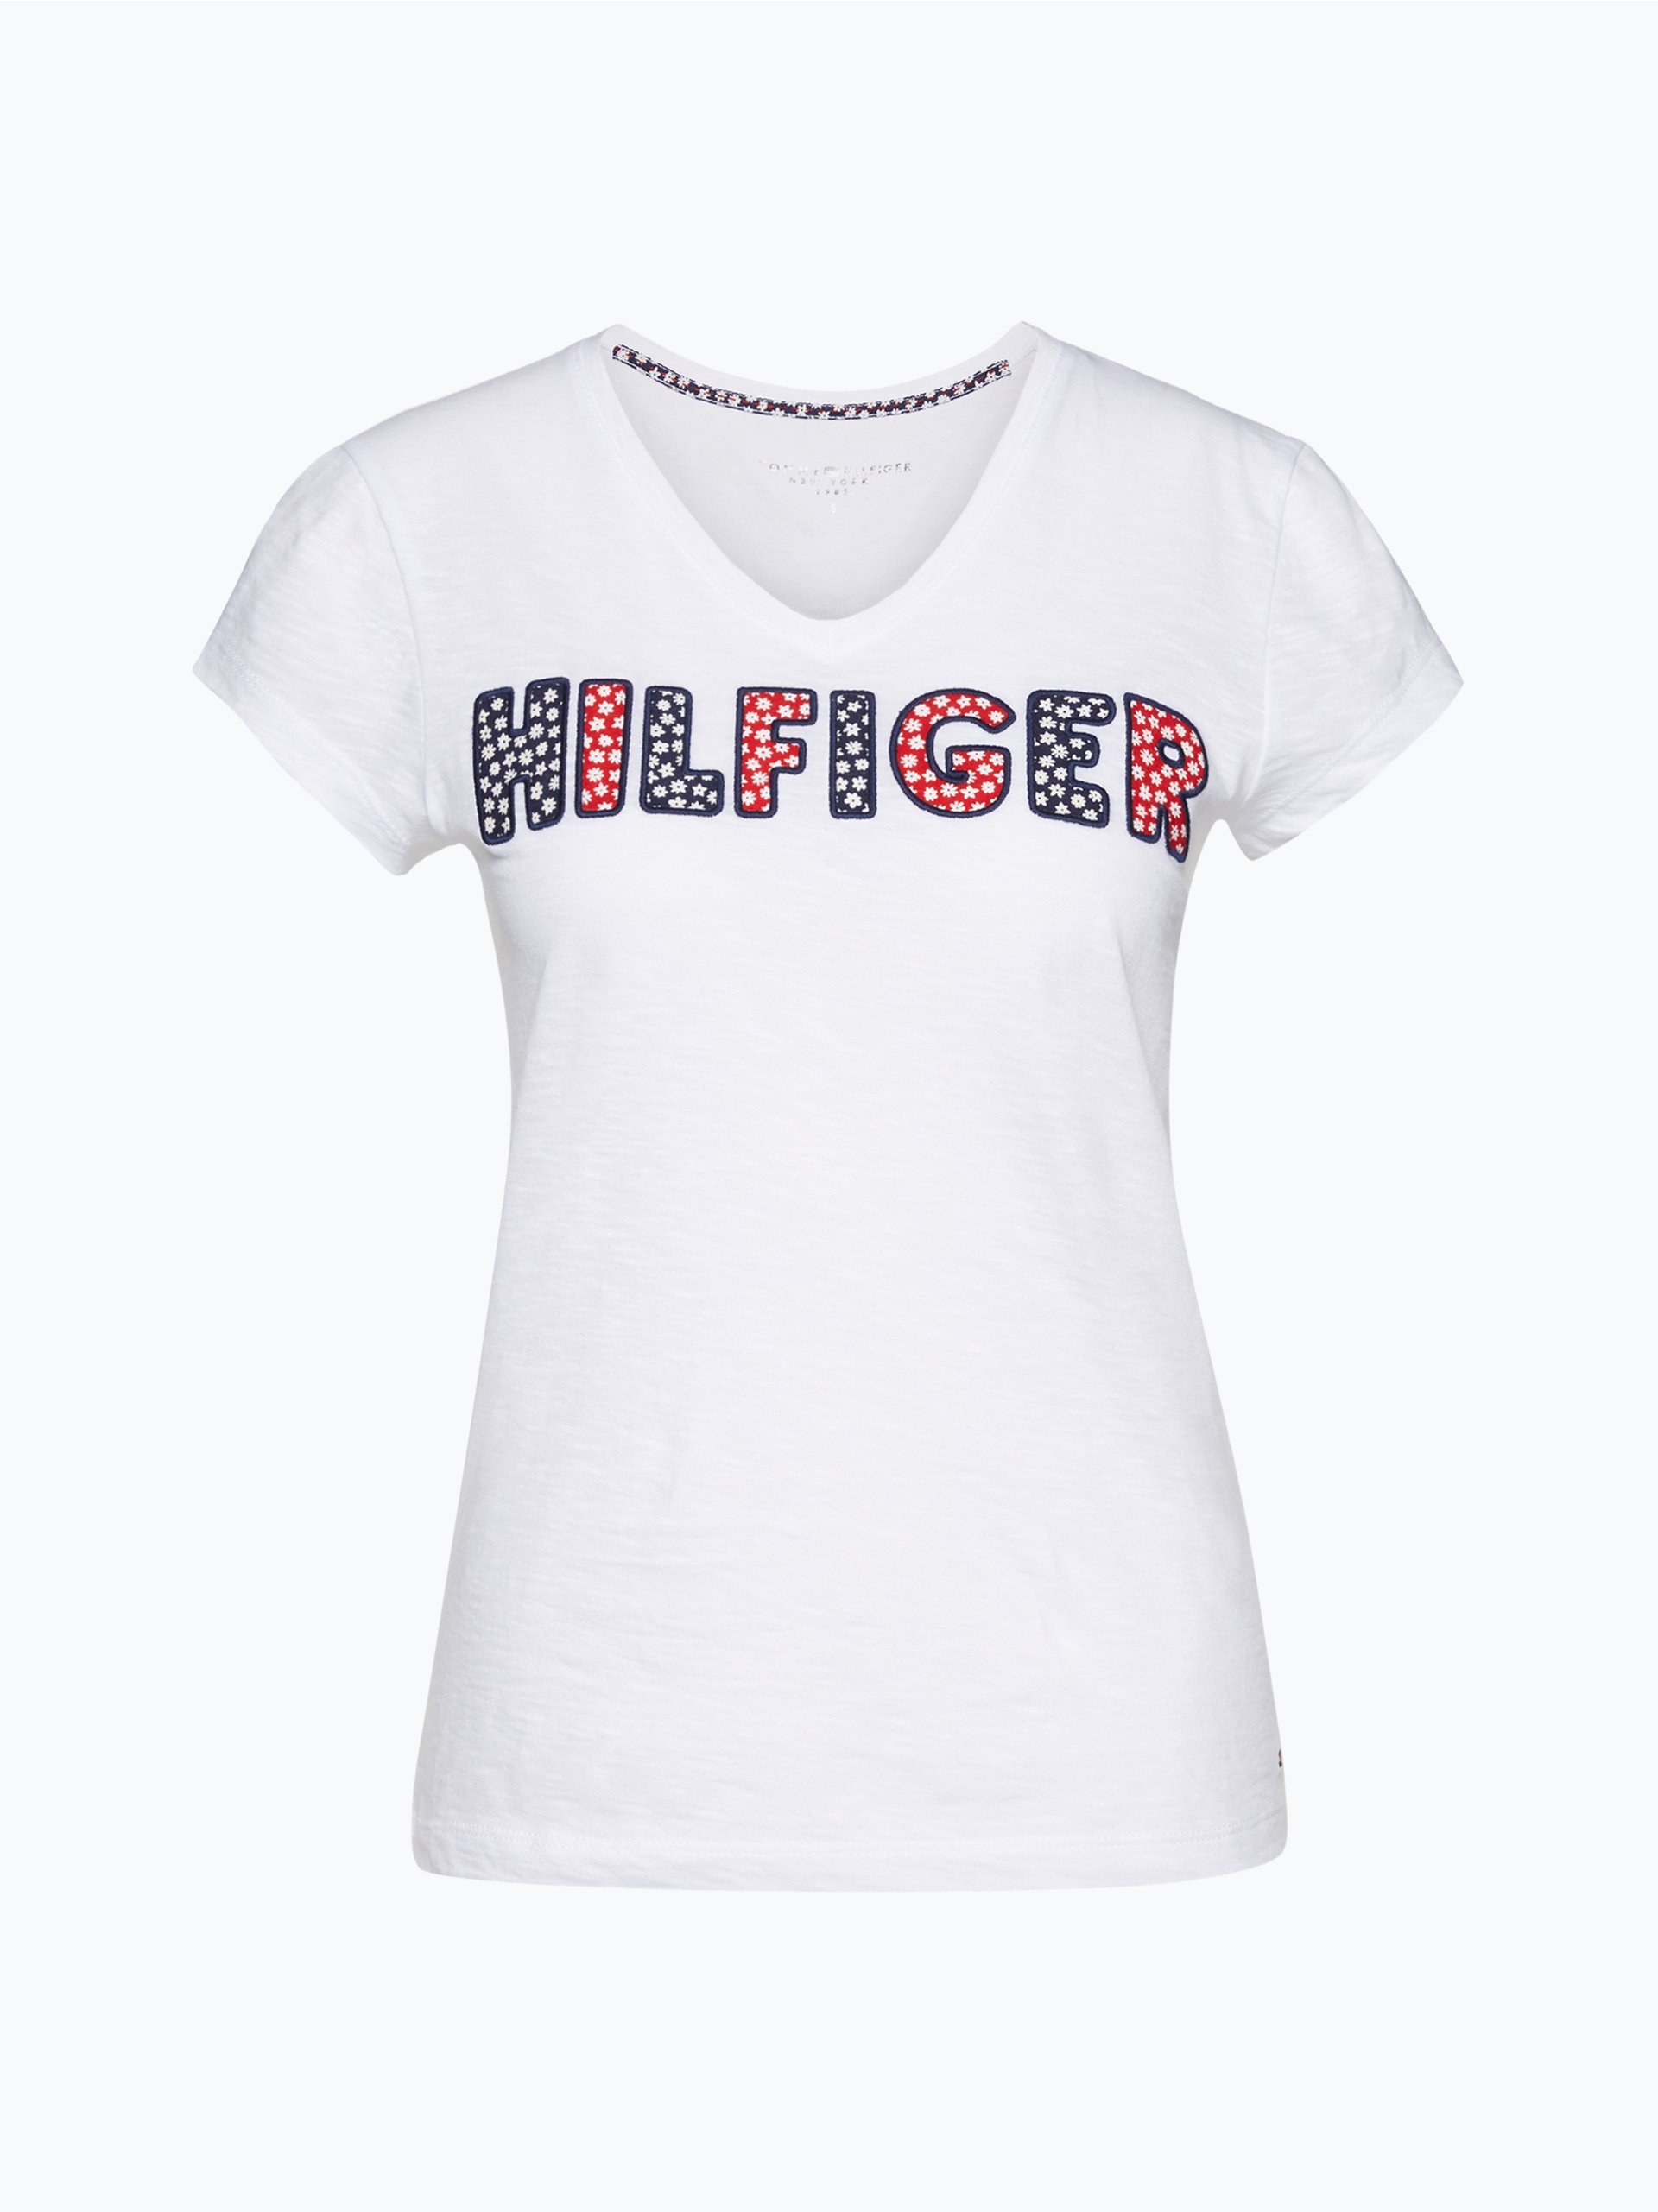 tommy hilfiger damen t shirt 2 online kaufen peek und cloppenburg de. Black Bedroom Furniture Sets. Home Design Ideas